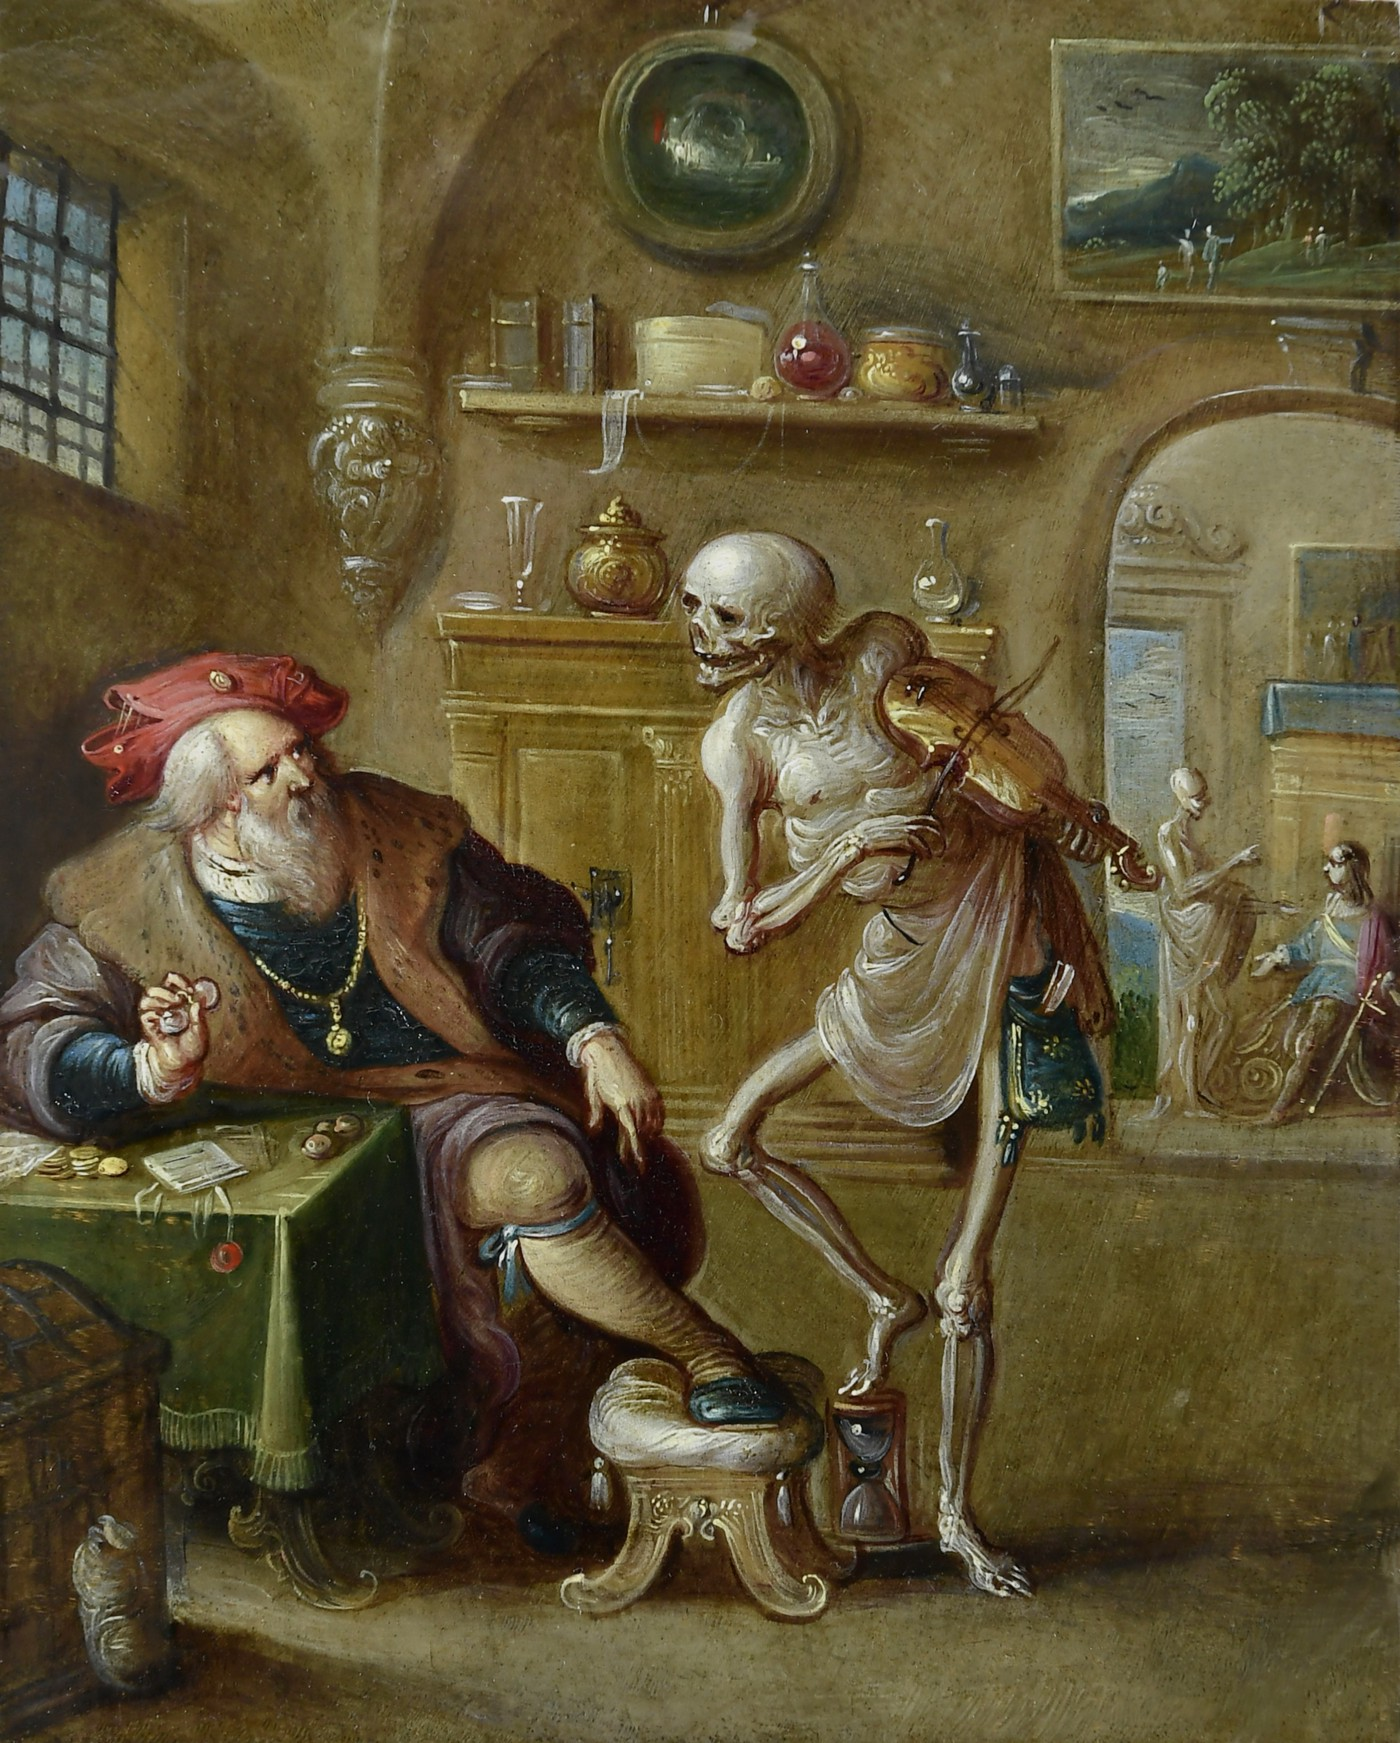 Death Playing the Violin by Frans Francken the Younger. A 17th century painting featuring a music-playing skeleton